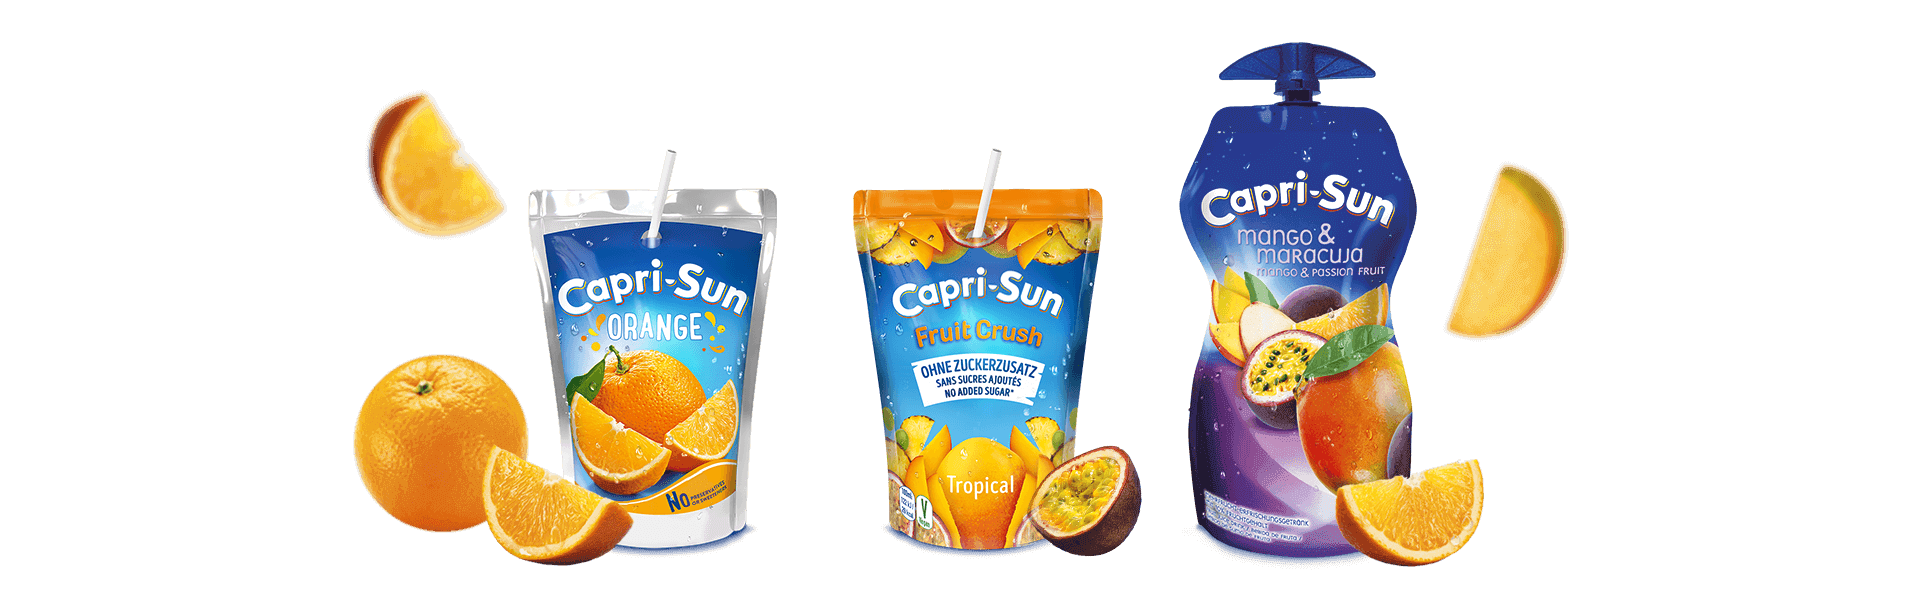 Capri-Sun_Orange_200ml_Fruit-Crush_No-added-sugar_Tropical_200ml_and_Mango-Maracuja_330ml_with-flying-fruits_picture